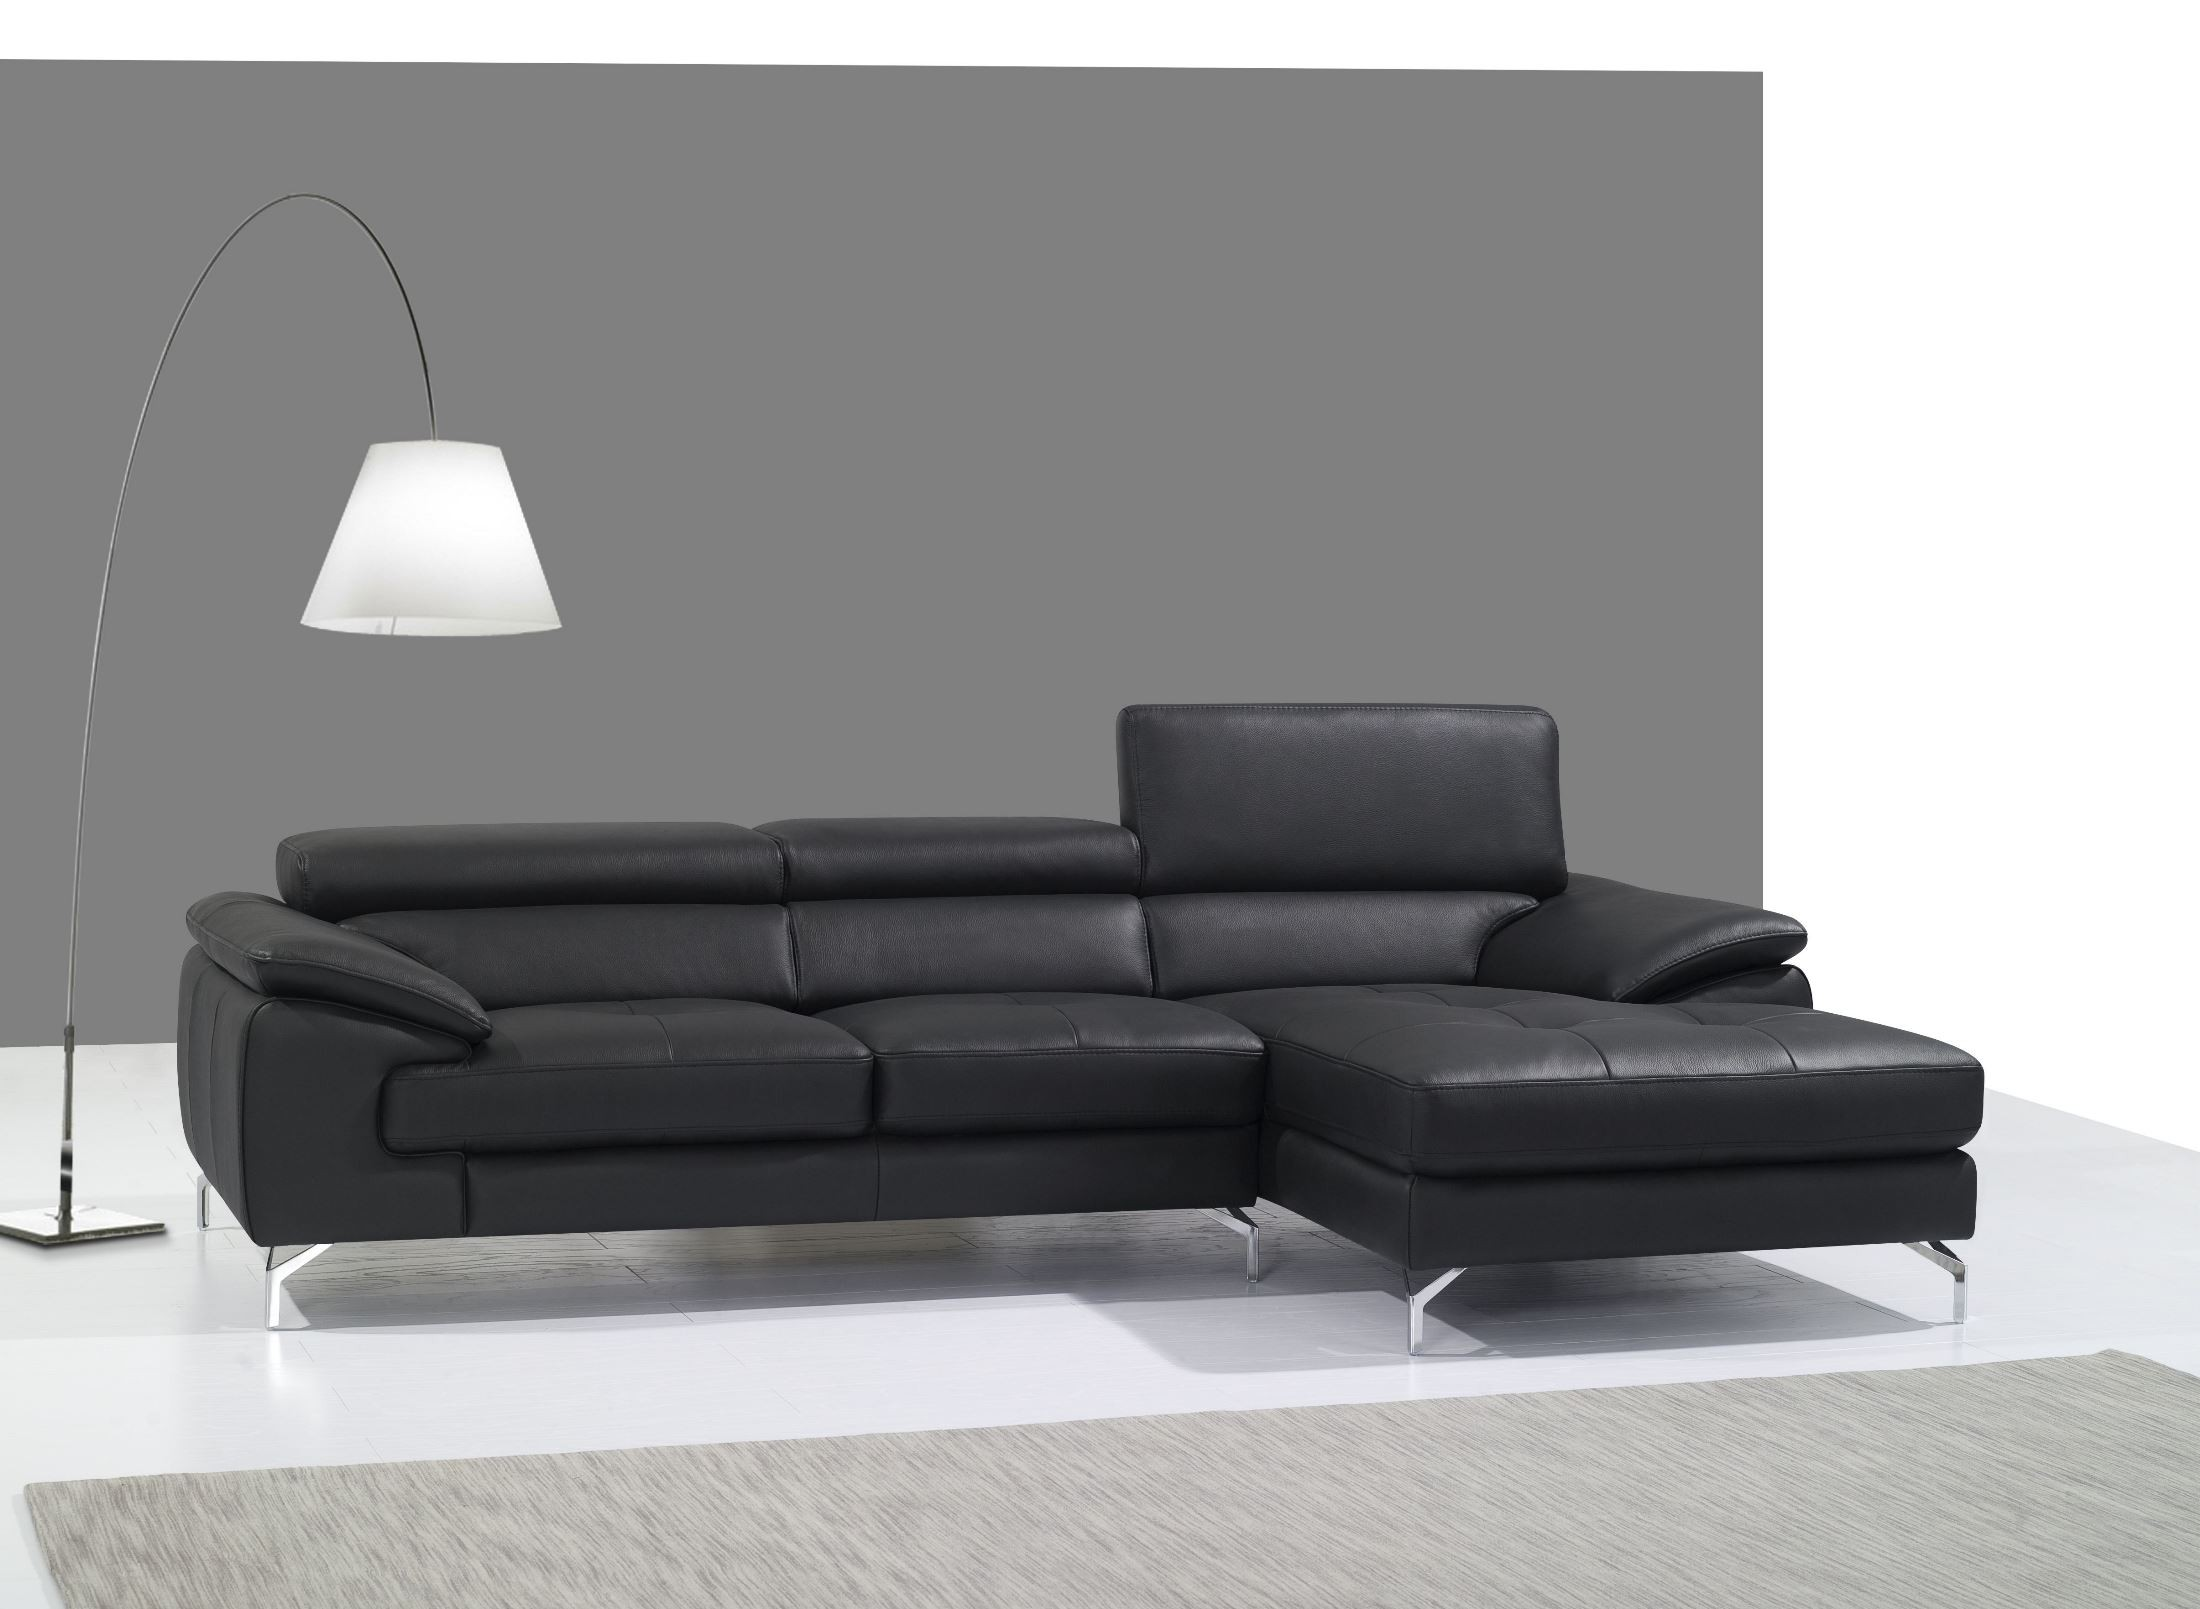 a973b black italian leather mini raf chaise sectional from j m 1790612 rhfc coleman furniture. Black Bedroom Furniture Sets. Home Design Ideas